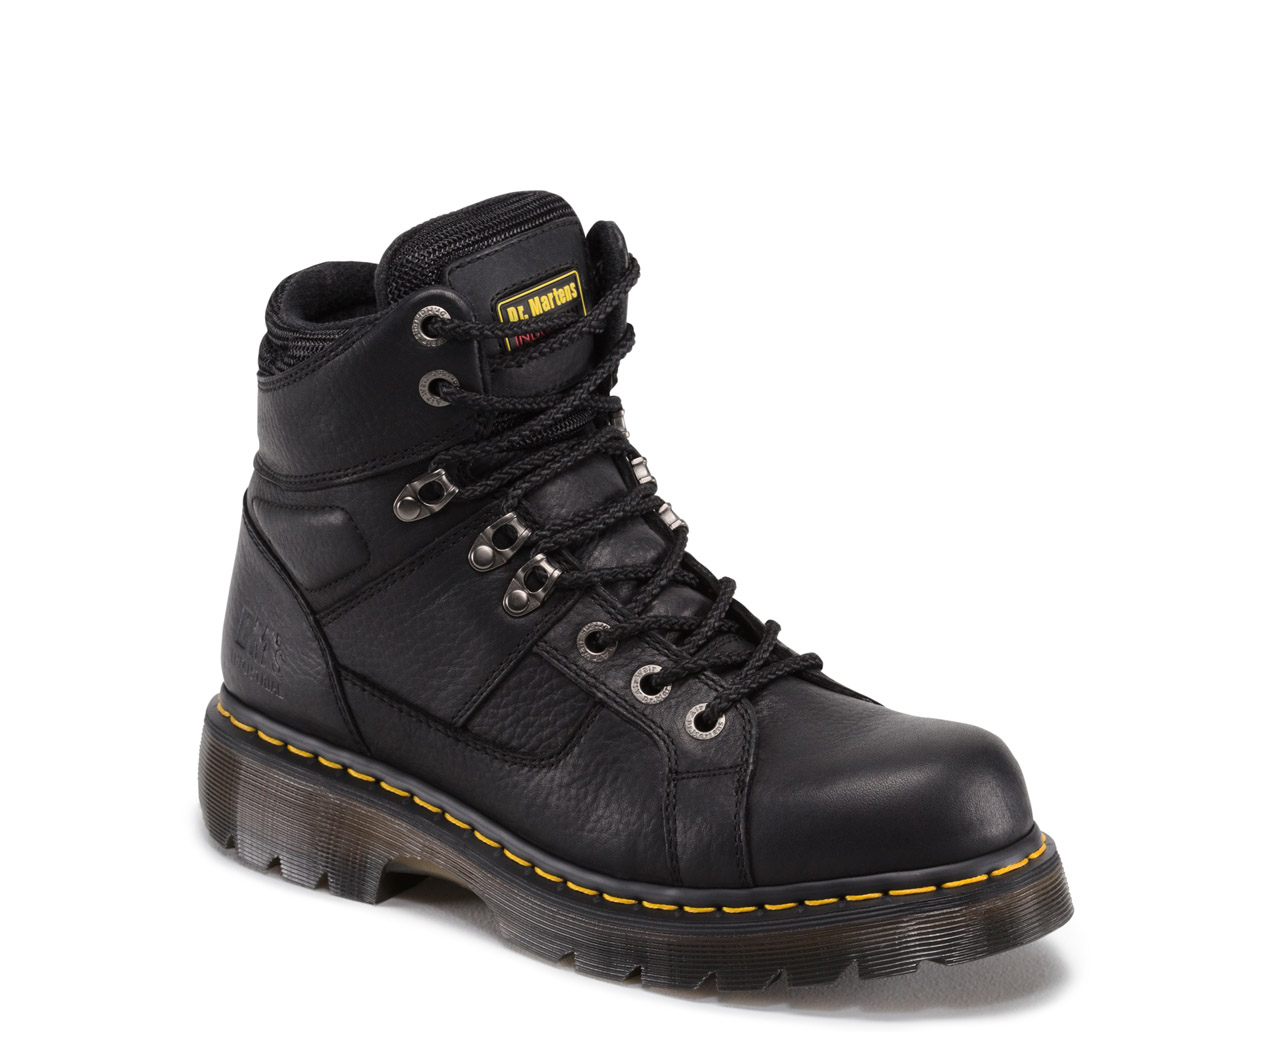 IRONBRIDGE | Industrial Footwear | Official Dr Martens Store